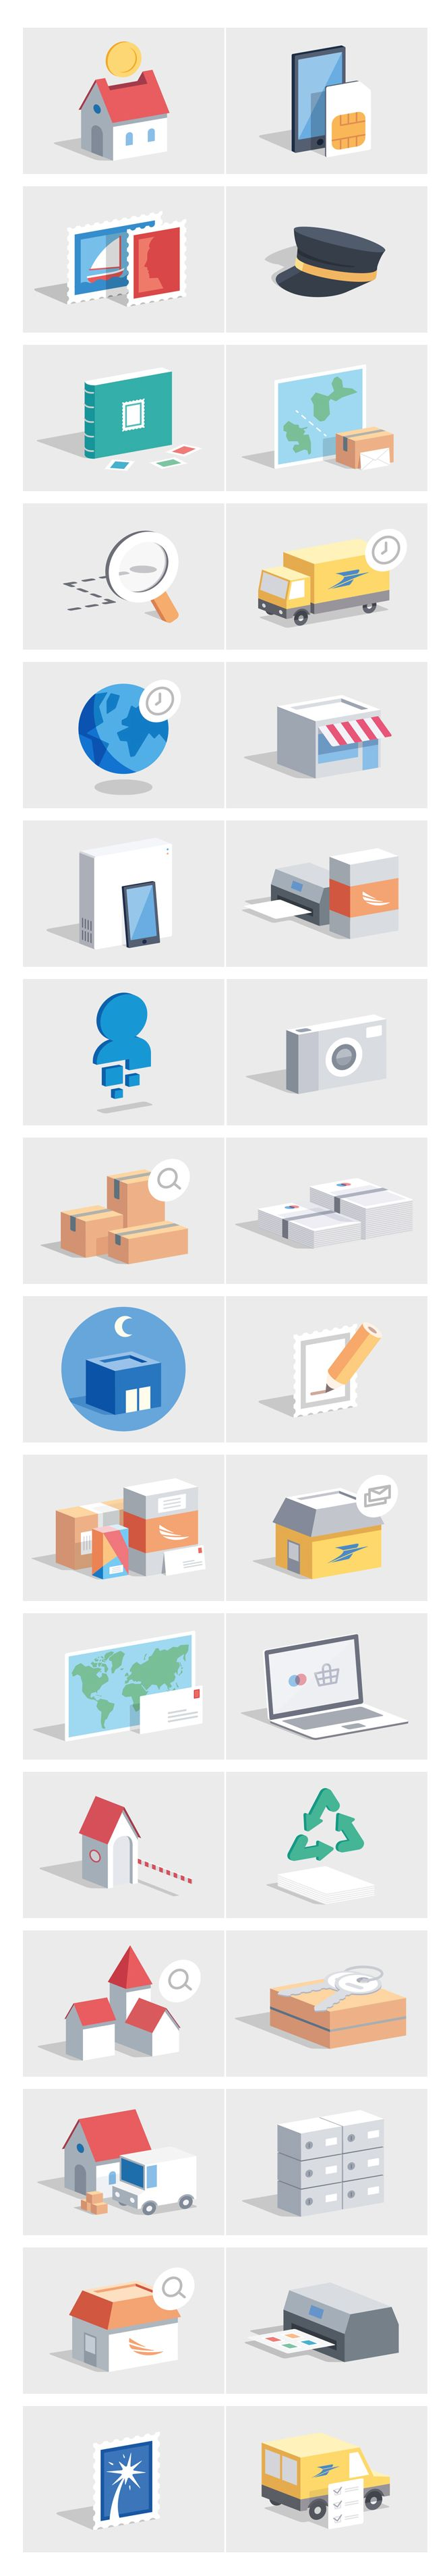 Look at that! Flat icons escaped to a new dimension…